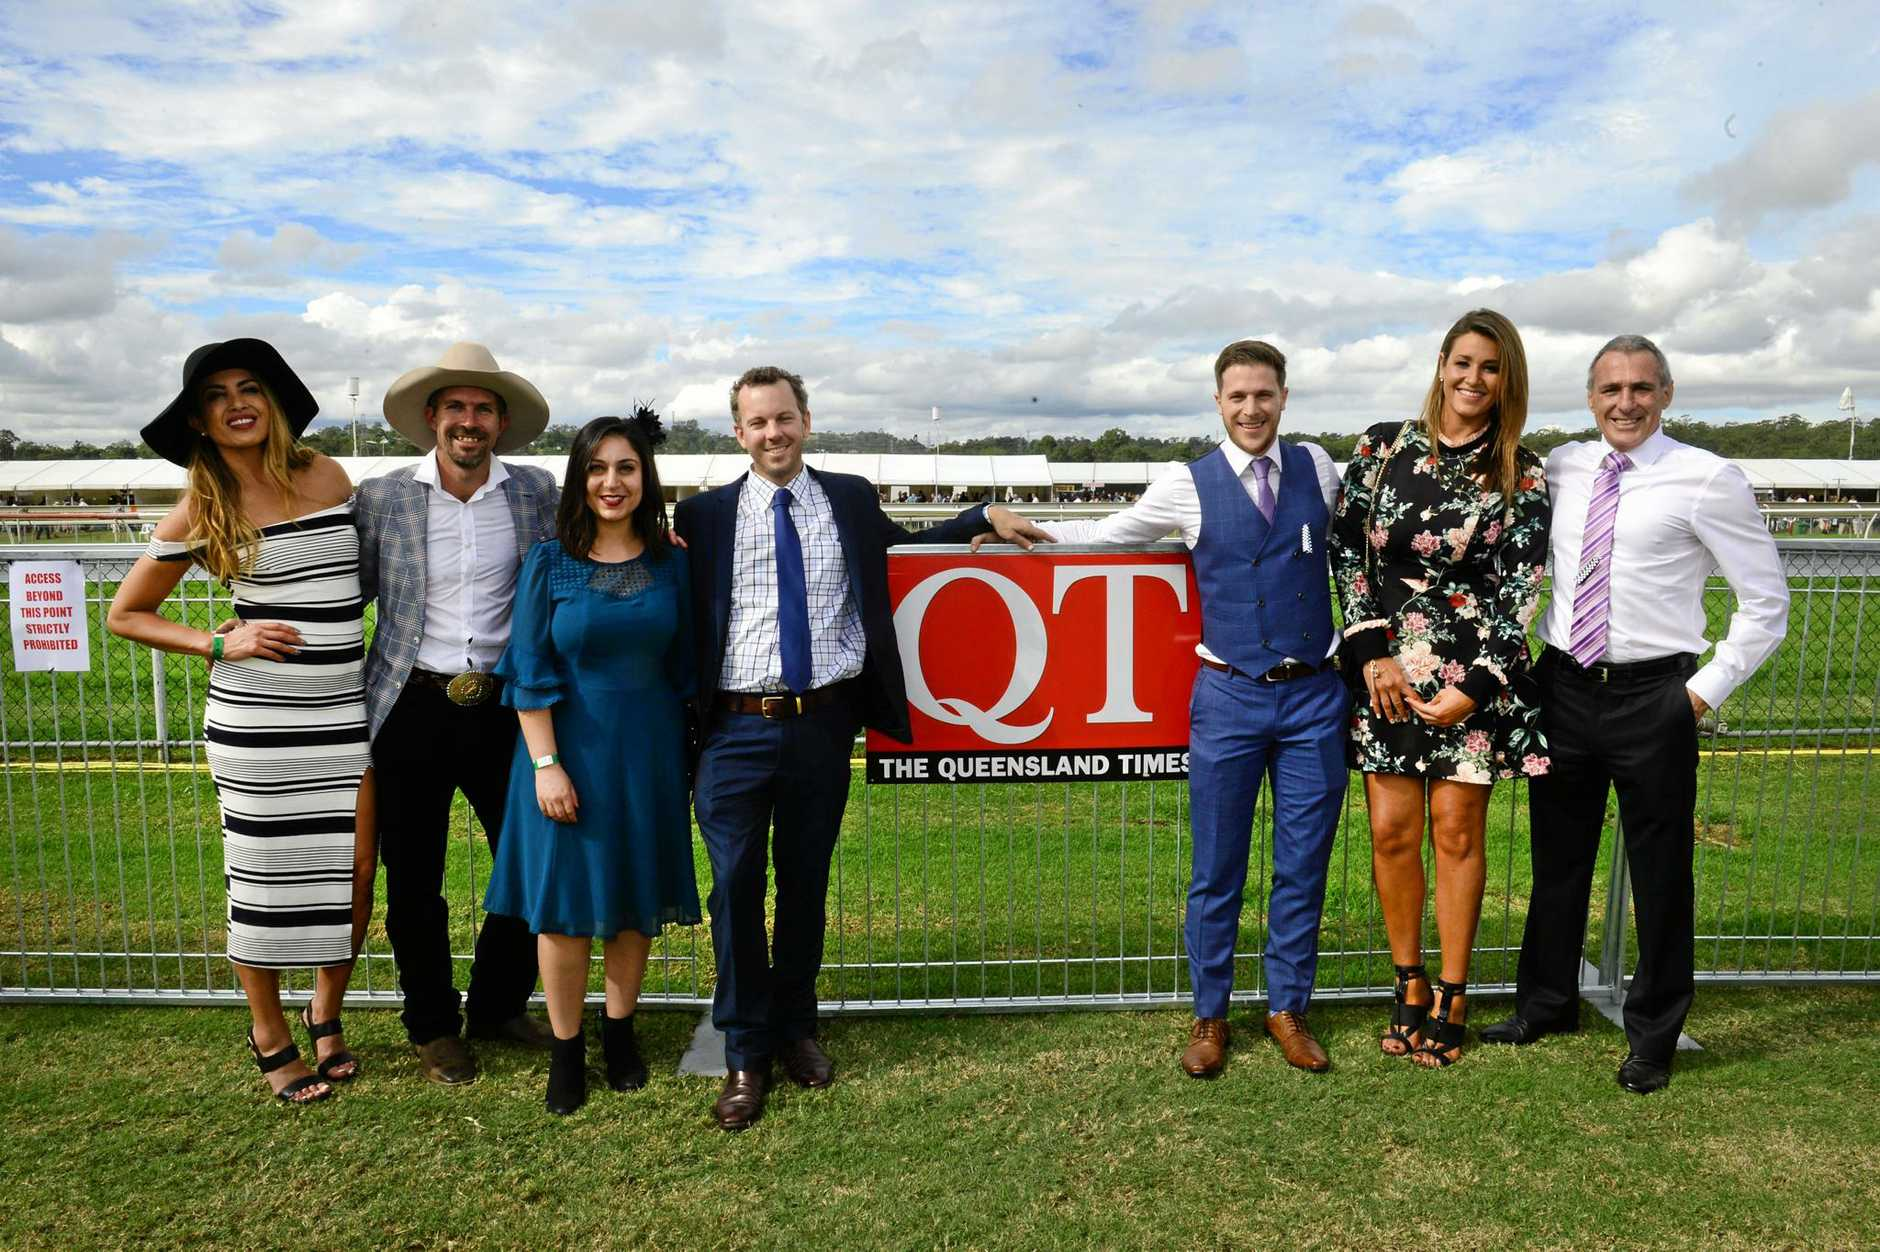 CUP STARS: Married at First Sight's Nadia, Sean, Alene, Simon, Jesse, Lauren and John.